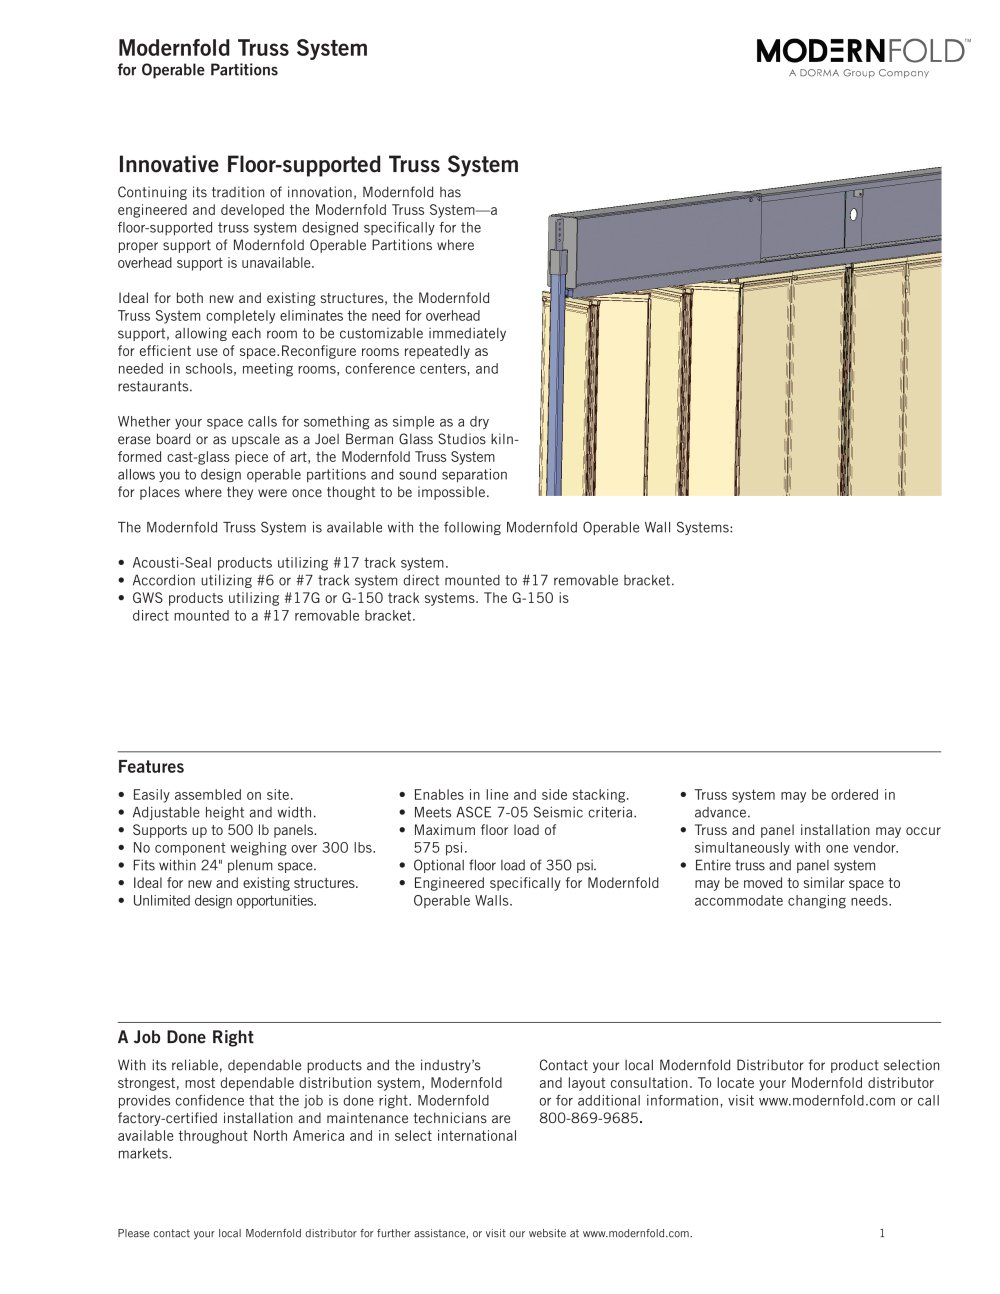 modernfold truss system 1 4 pages